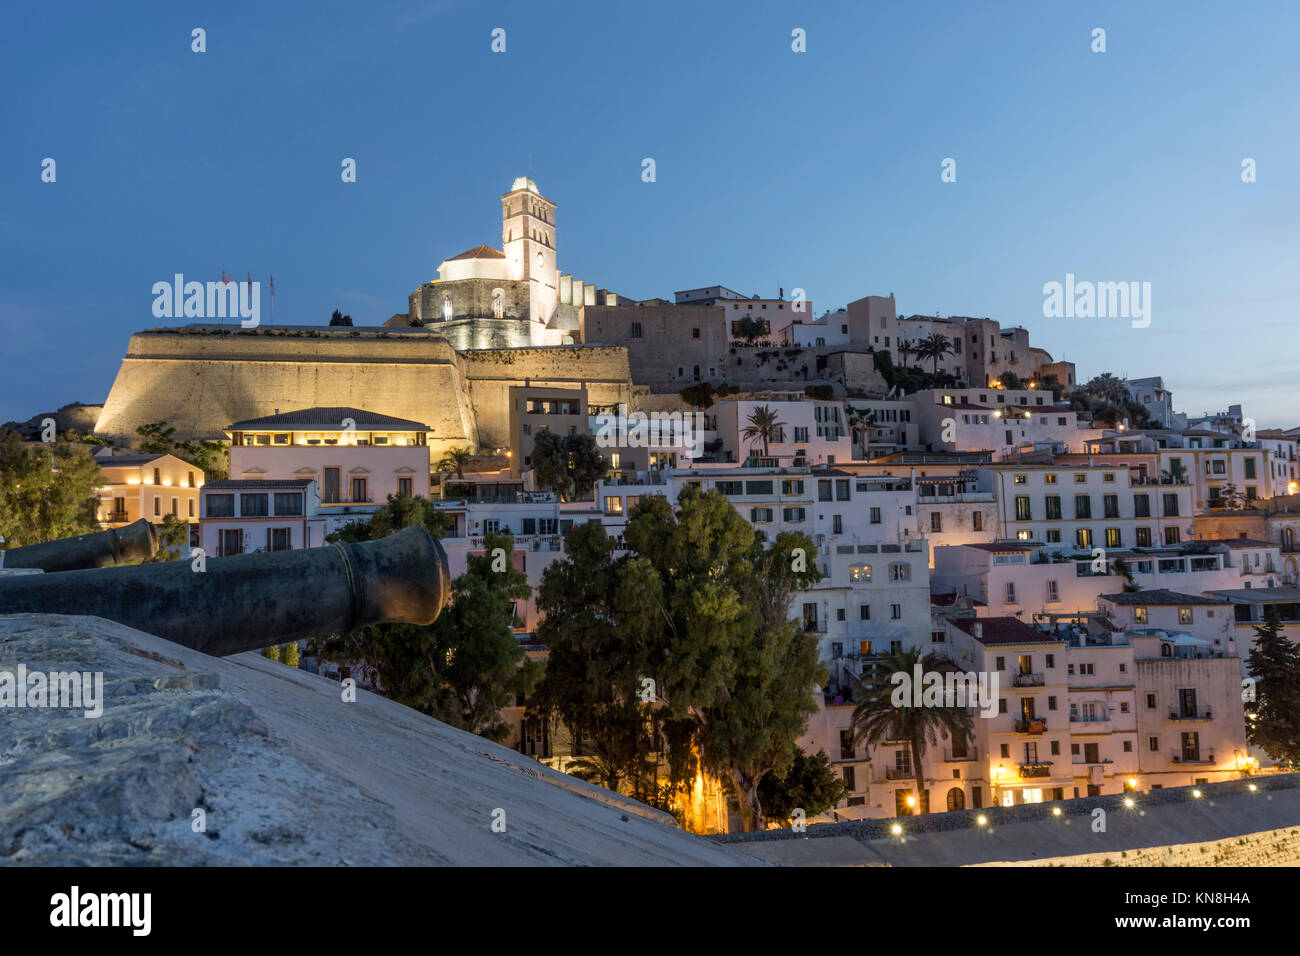 Spain, Baleares island, Ibiza, Dalt vila, sunset, overview from the fortress - Stock Image